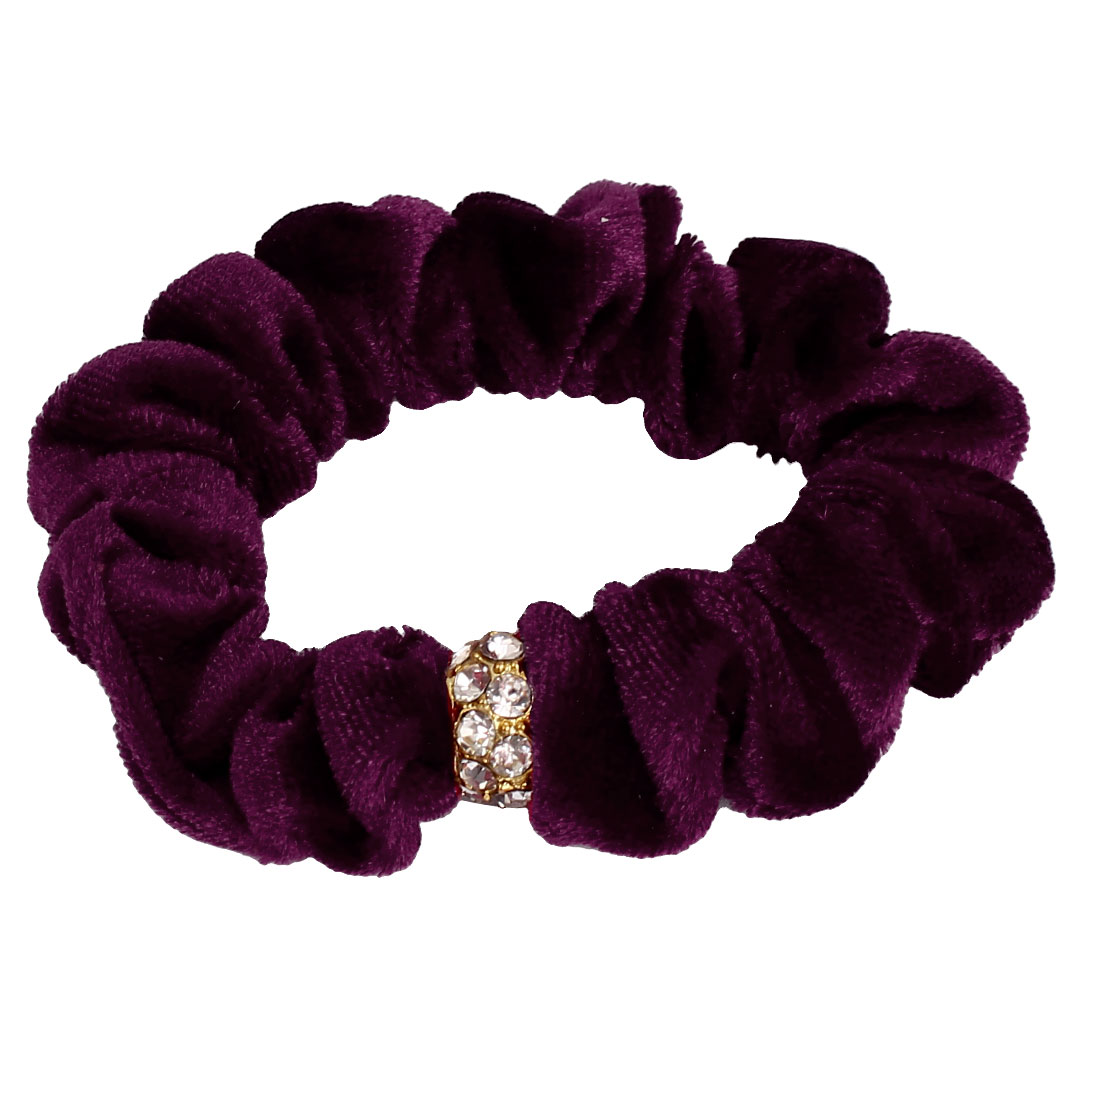 Faux Rhinestone Inlaid Bead Decor Women Elastic Hair Ring Rope Band Ponytail Holder Purple